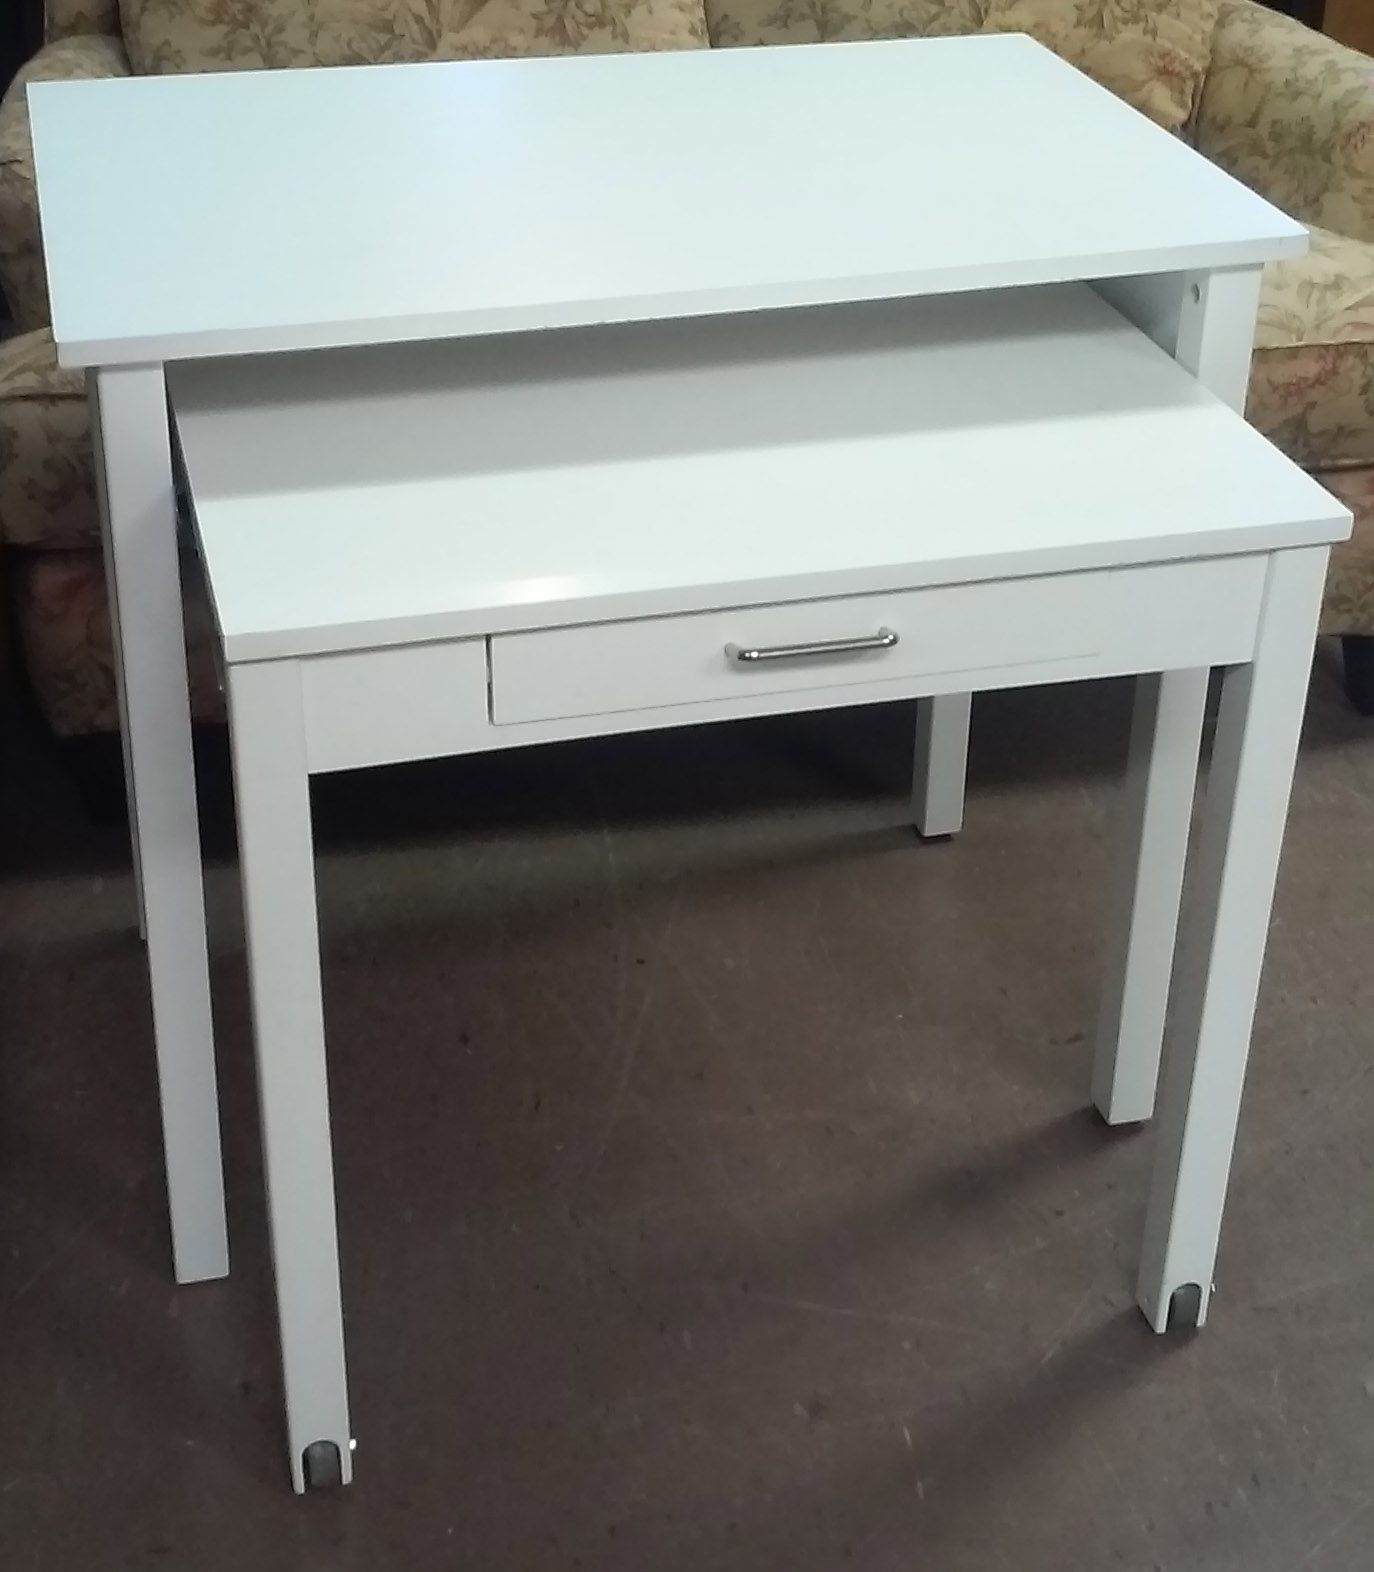 Uhuru furniture collectibles sold reduced expanding for Reduced furniture